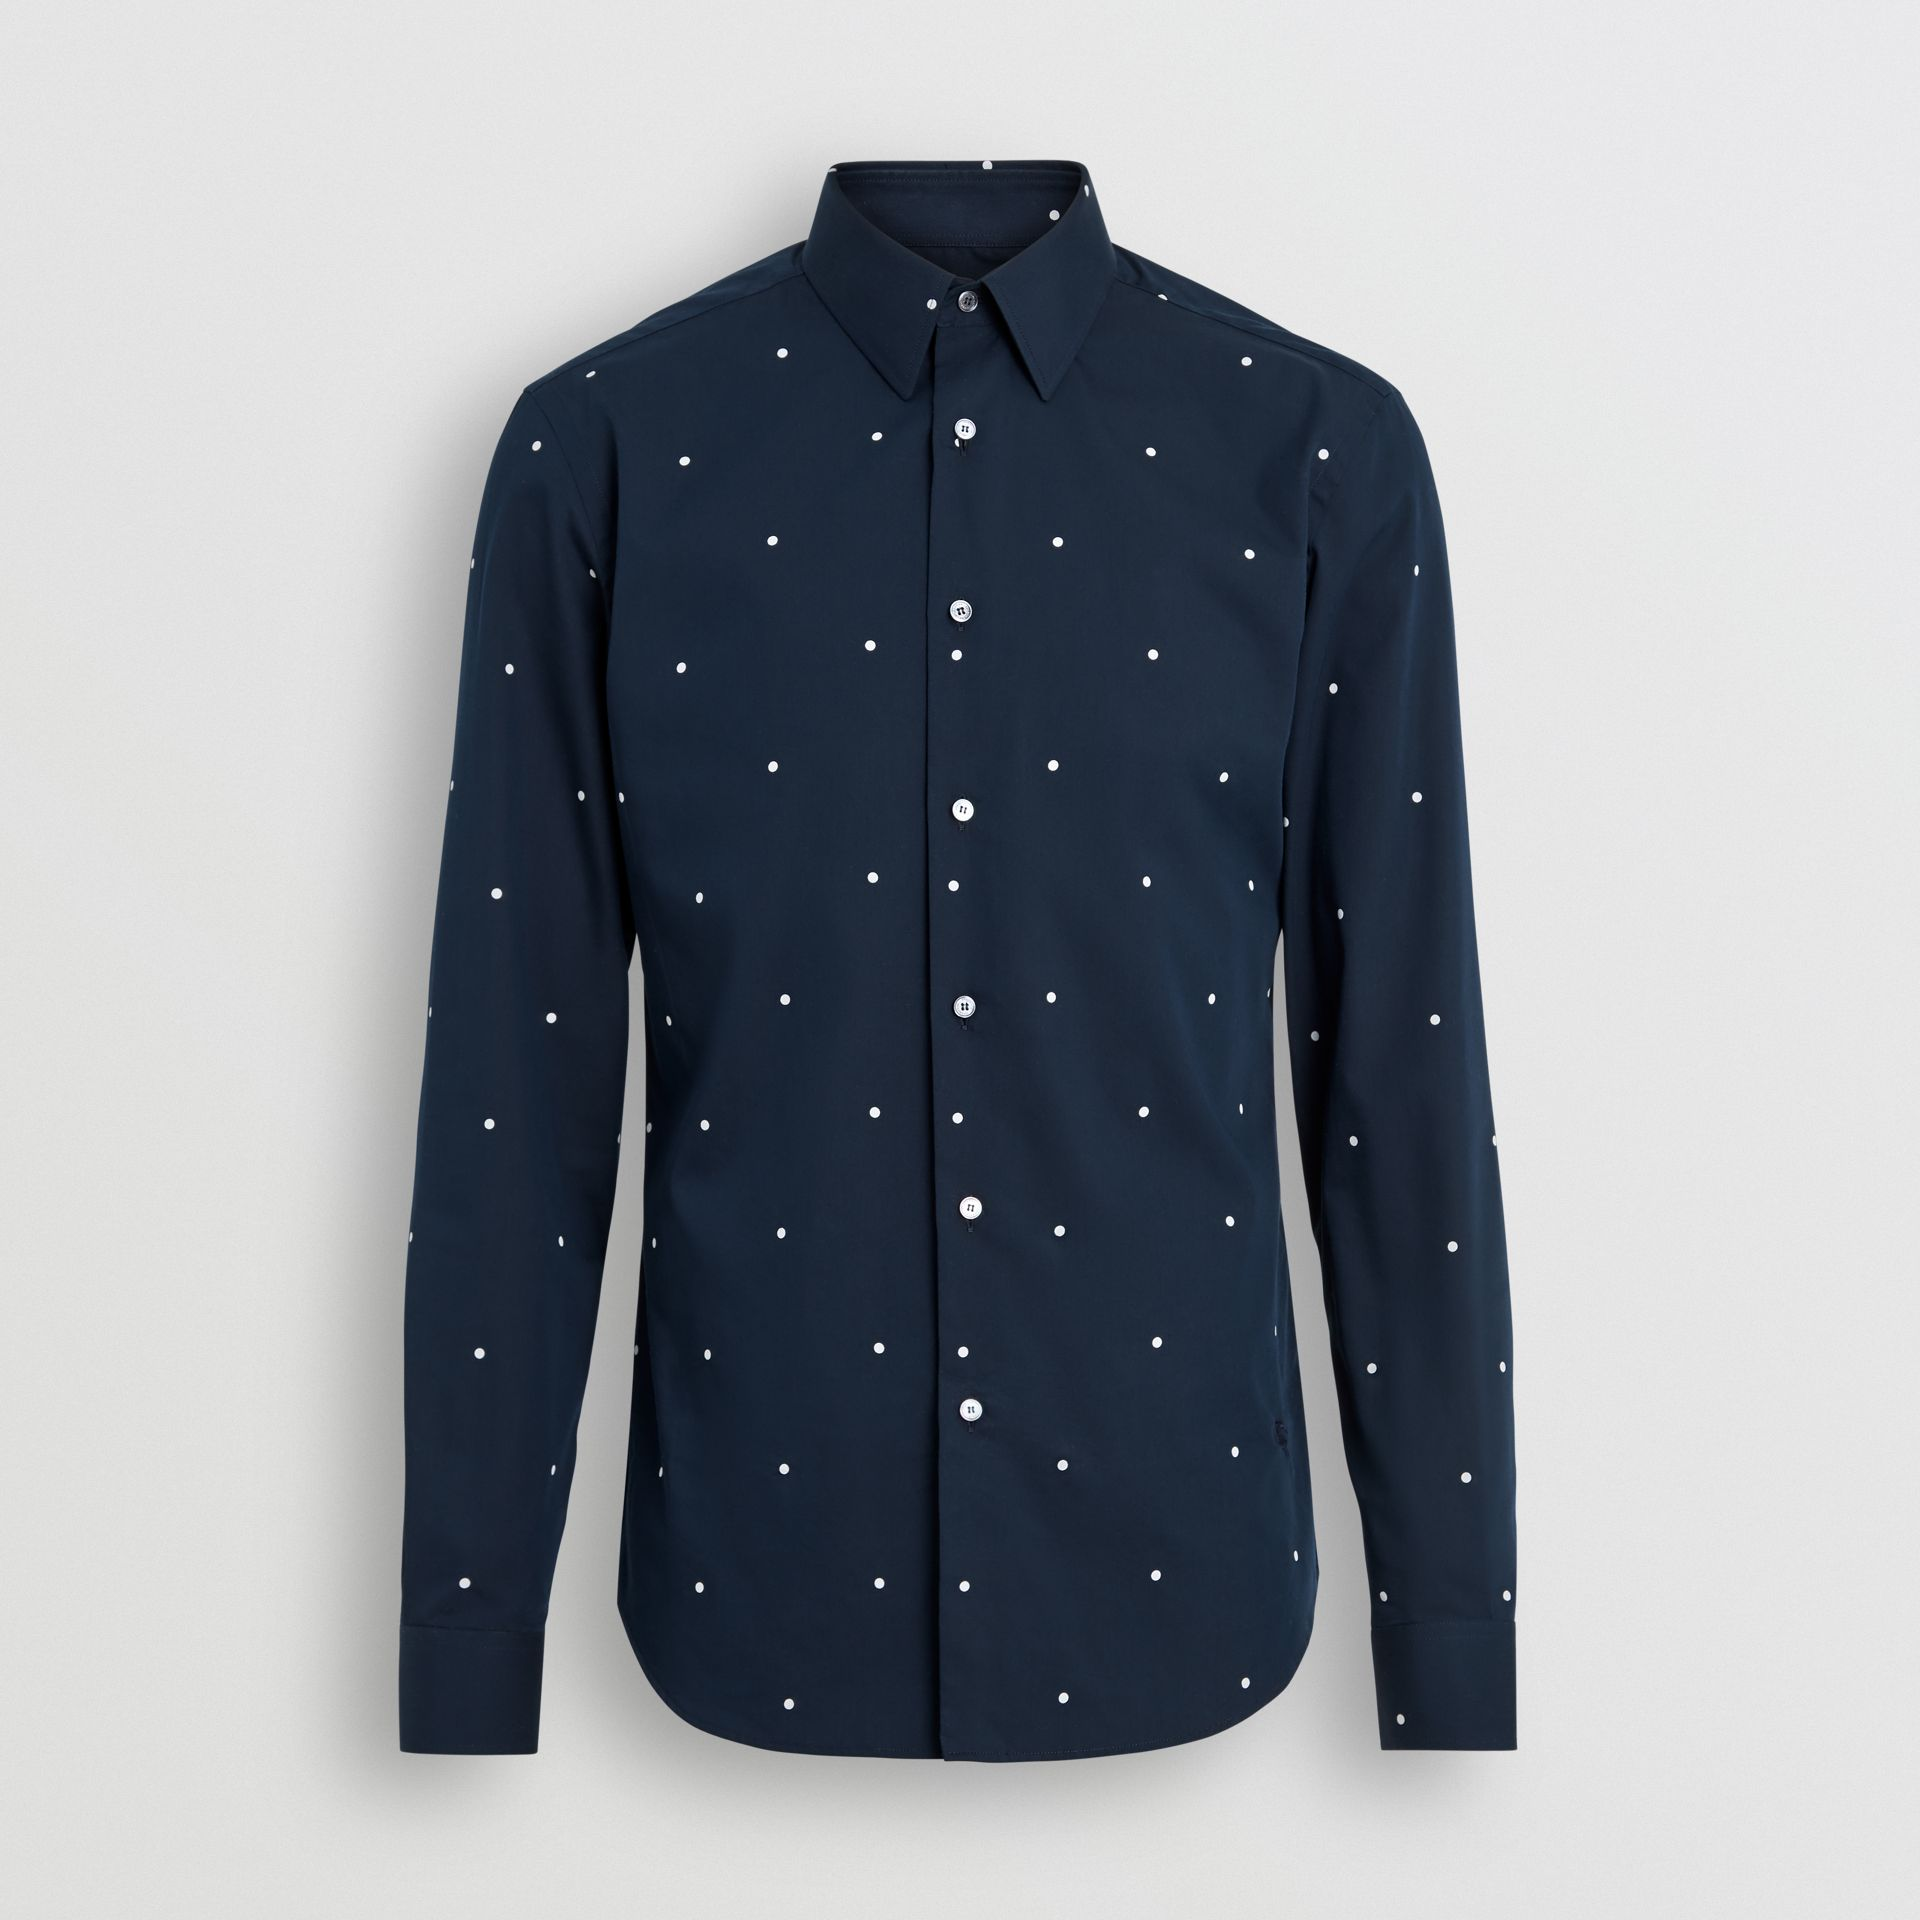 Slim Fit Polka Dot Cotton Poplin Shirt in Navy - Men | Burberry - gallery image 3